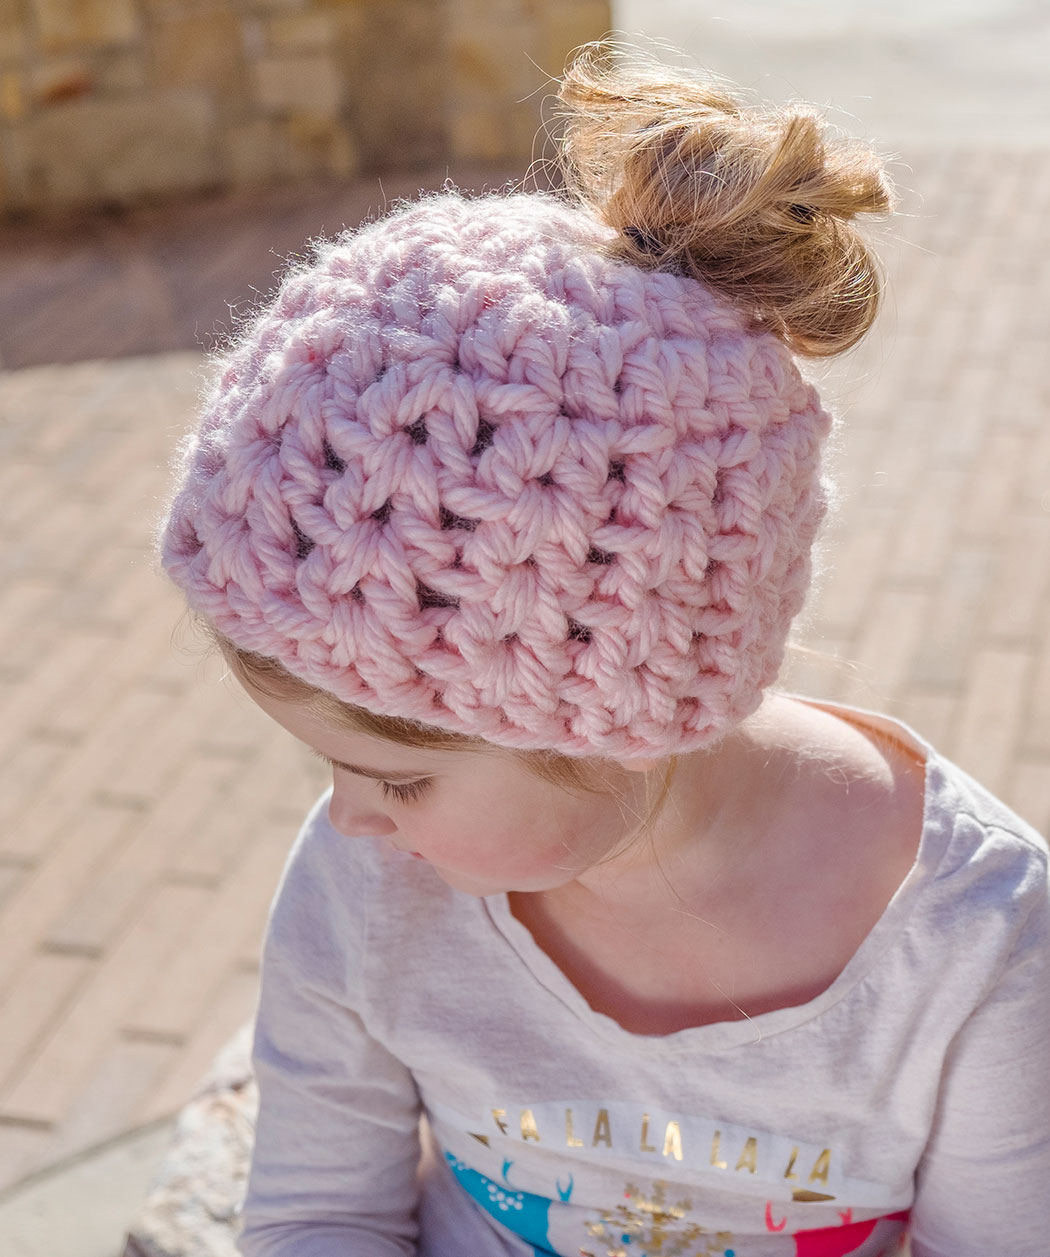 Crochet And Knitting Patterns Messy Bun Hat Pattern Collection Red Heart